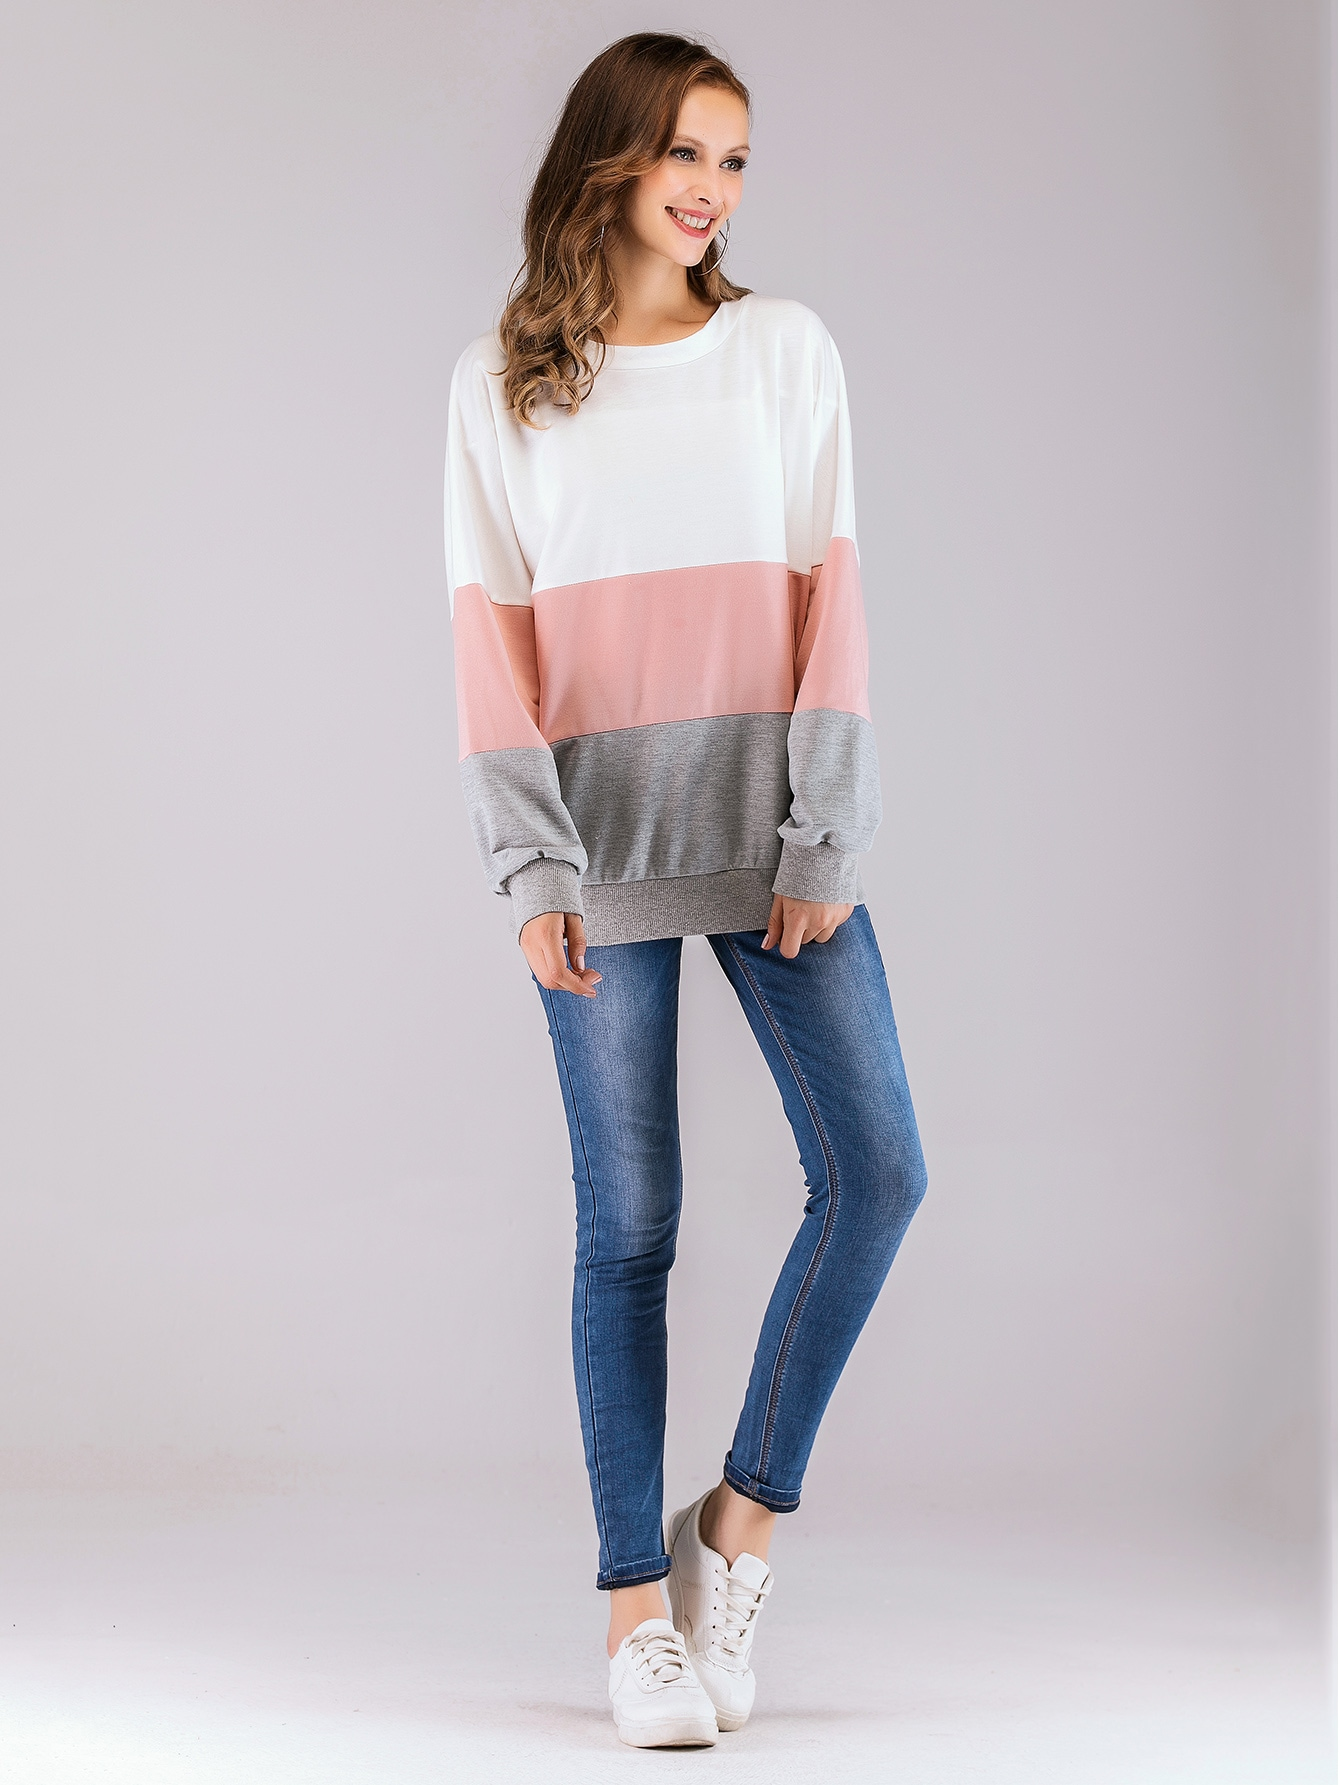 Colorblock Knot-back Drop Shoulder Sweatshirt Colorblock Knot-back Drop Shoulder Sweatshirt